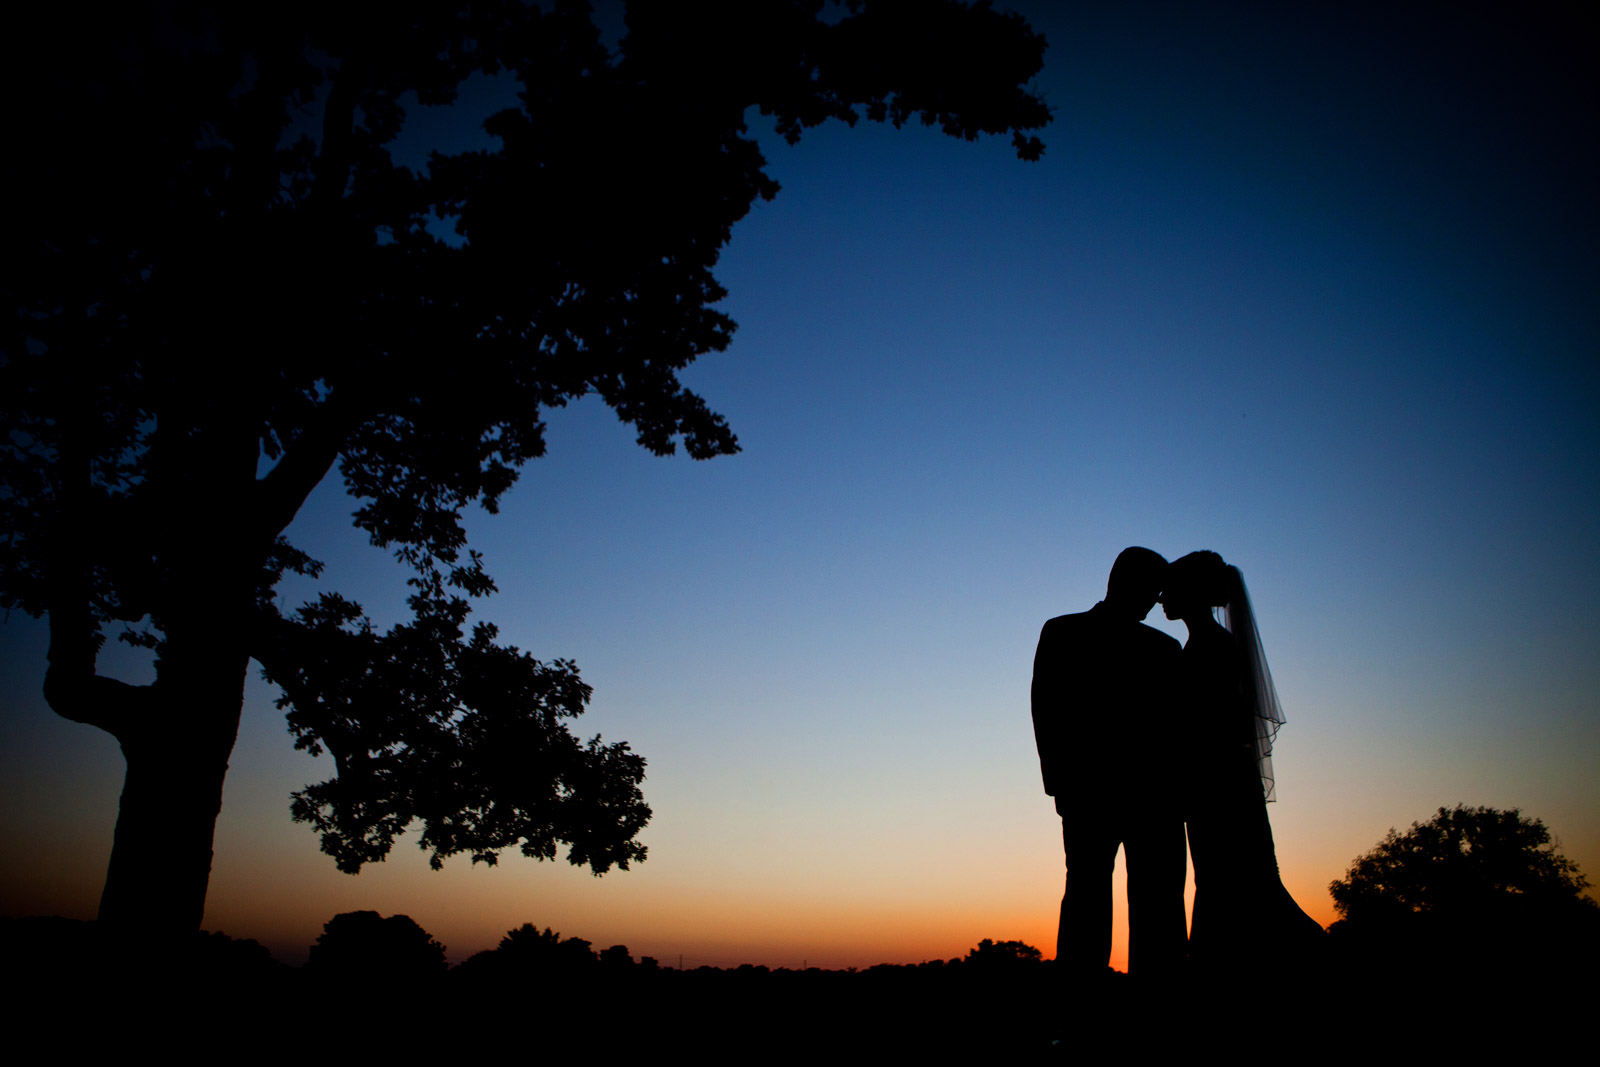 Bride and Groom in silhouette at sunset surrounded by trees and nature